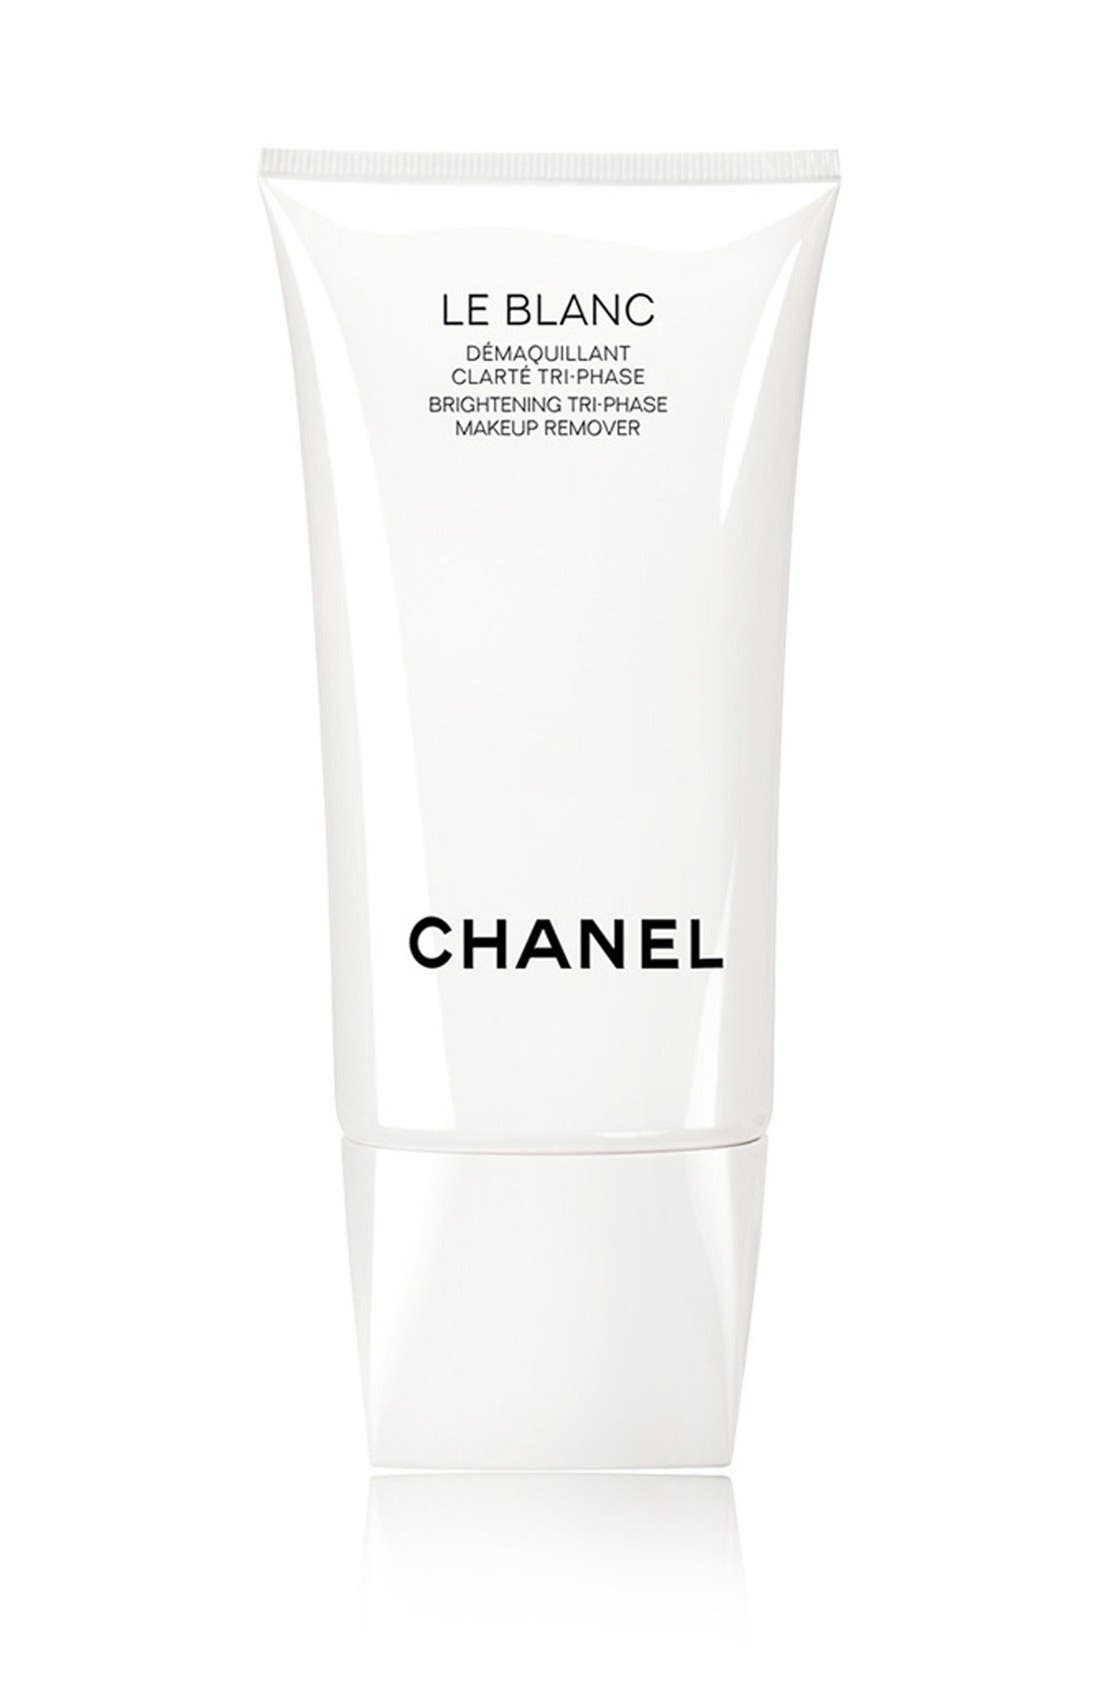 CHANEL,                             LE BLANC<br />Brightening Tri-Phase Makeup Remover,                             Main thumbnail 1, color,                             NO COLOR